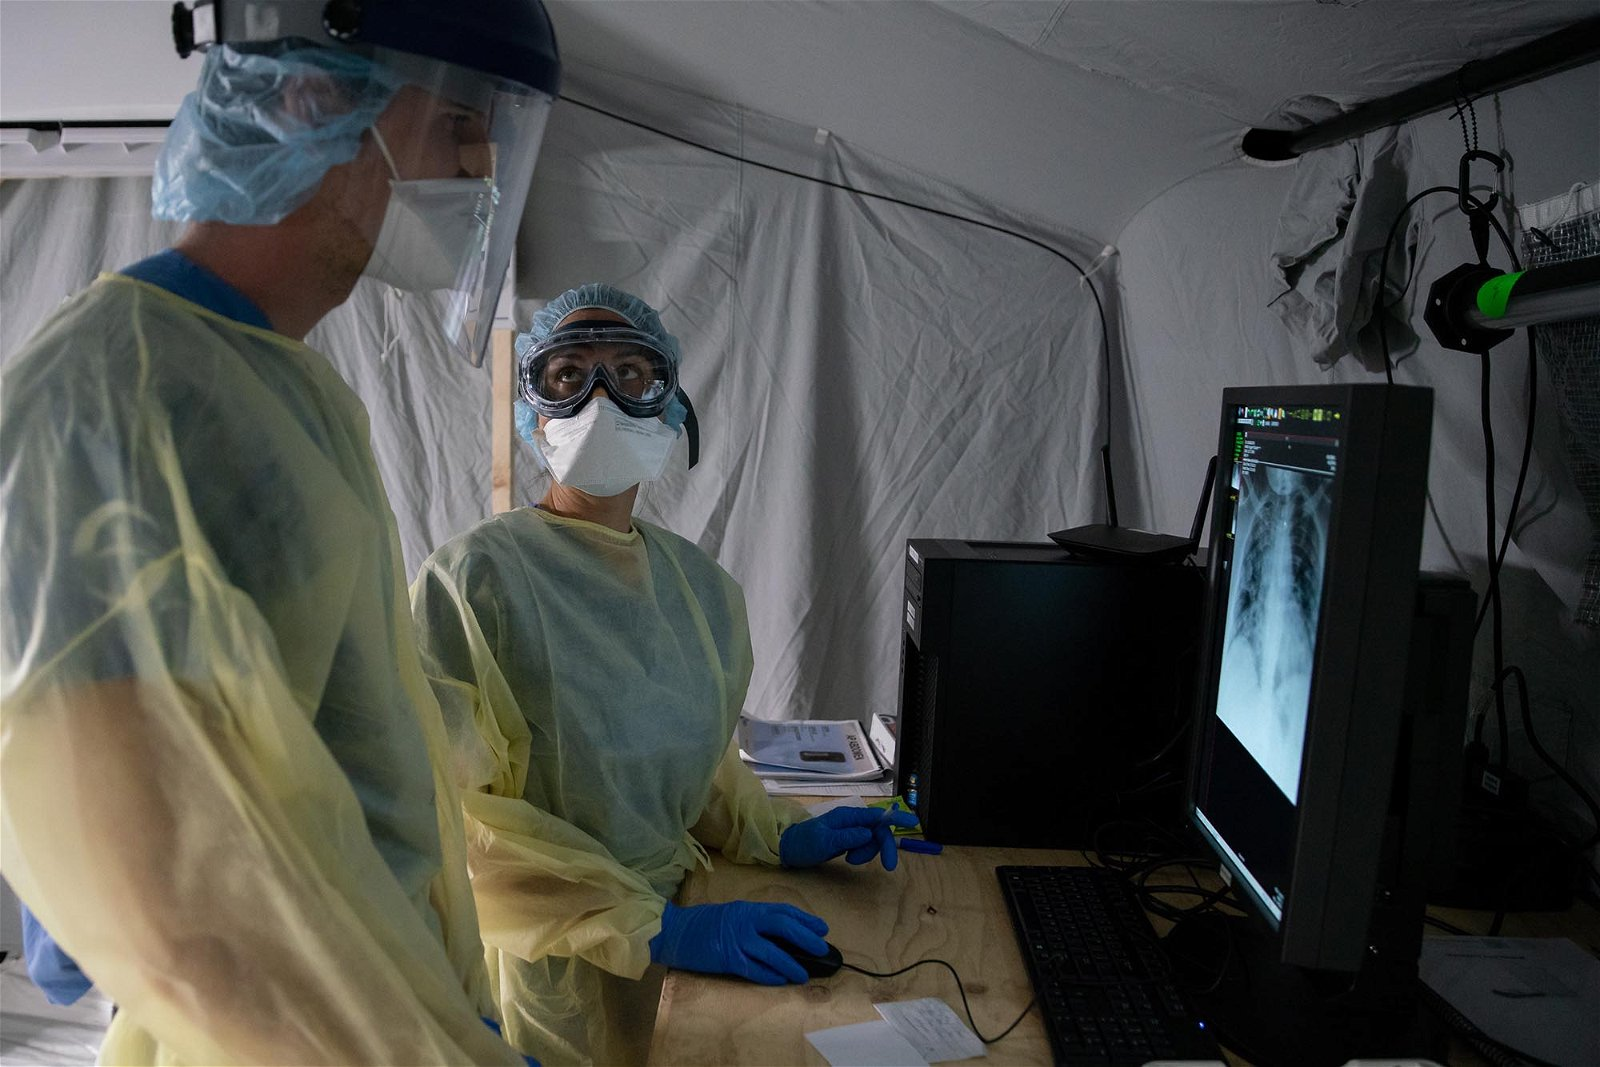 Stephanie, a physician's assistant, reviews patient x-rays with Lucca, a translator who is in medical school, as she orients him to the SP field hospital in Cremona.